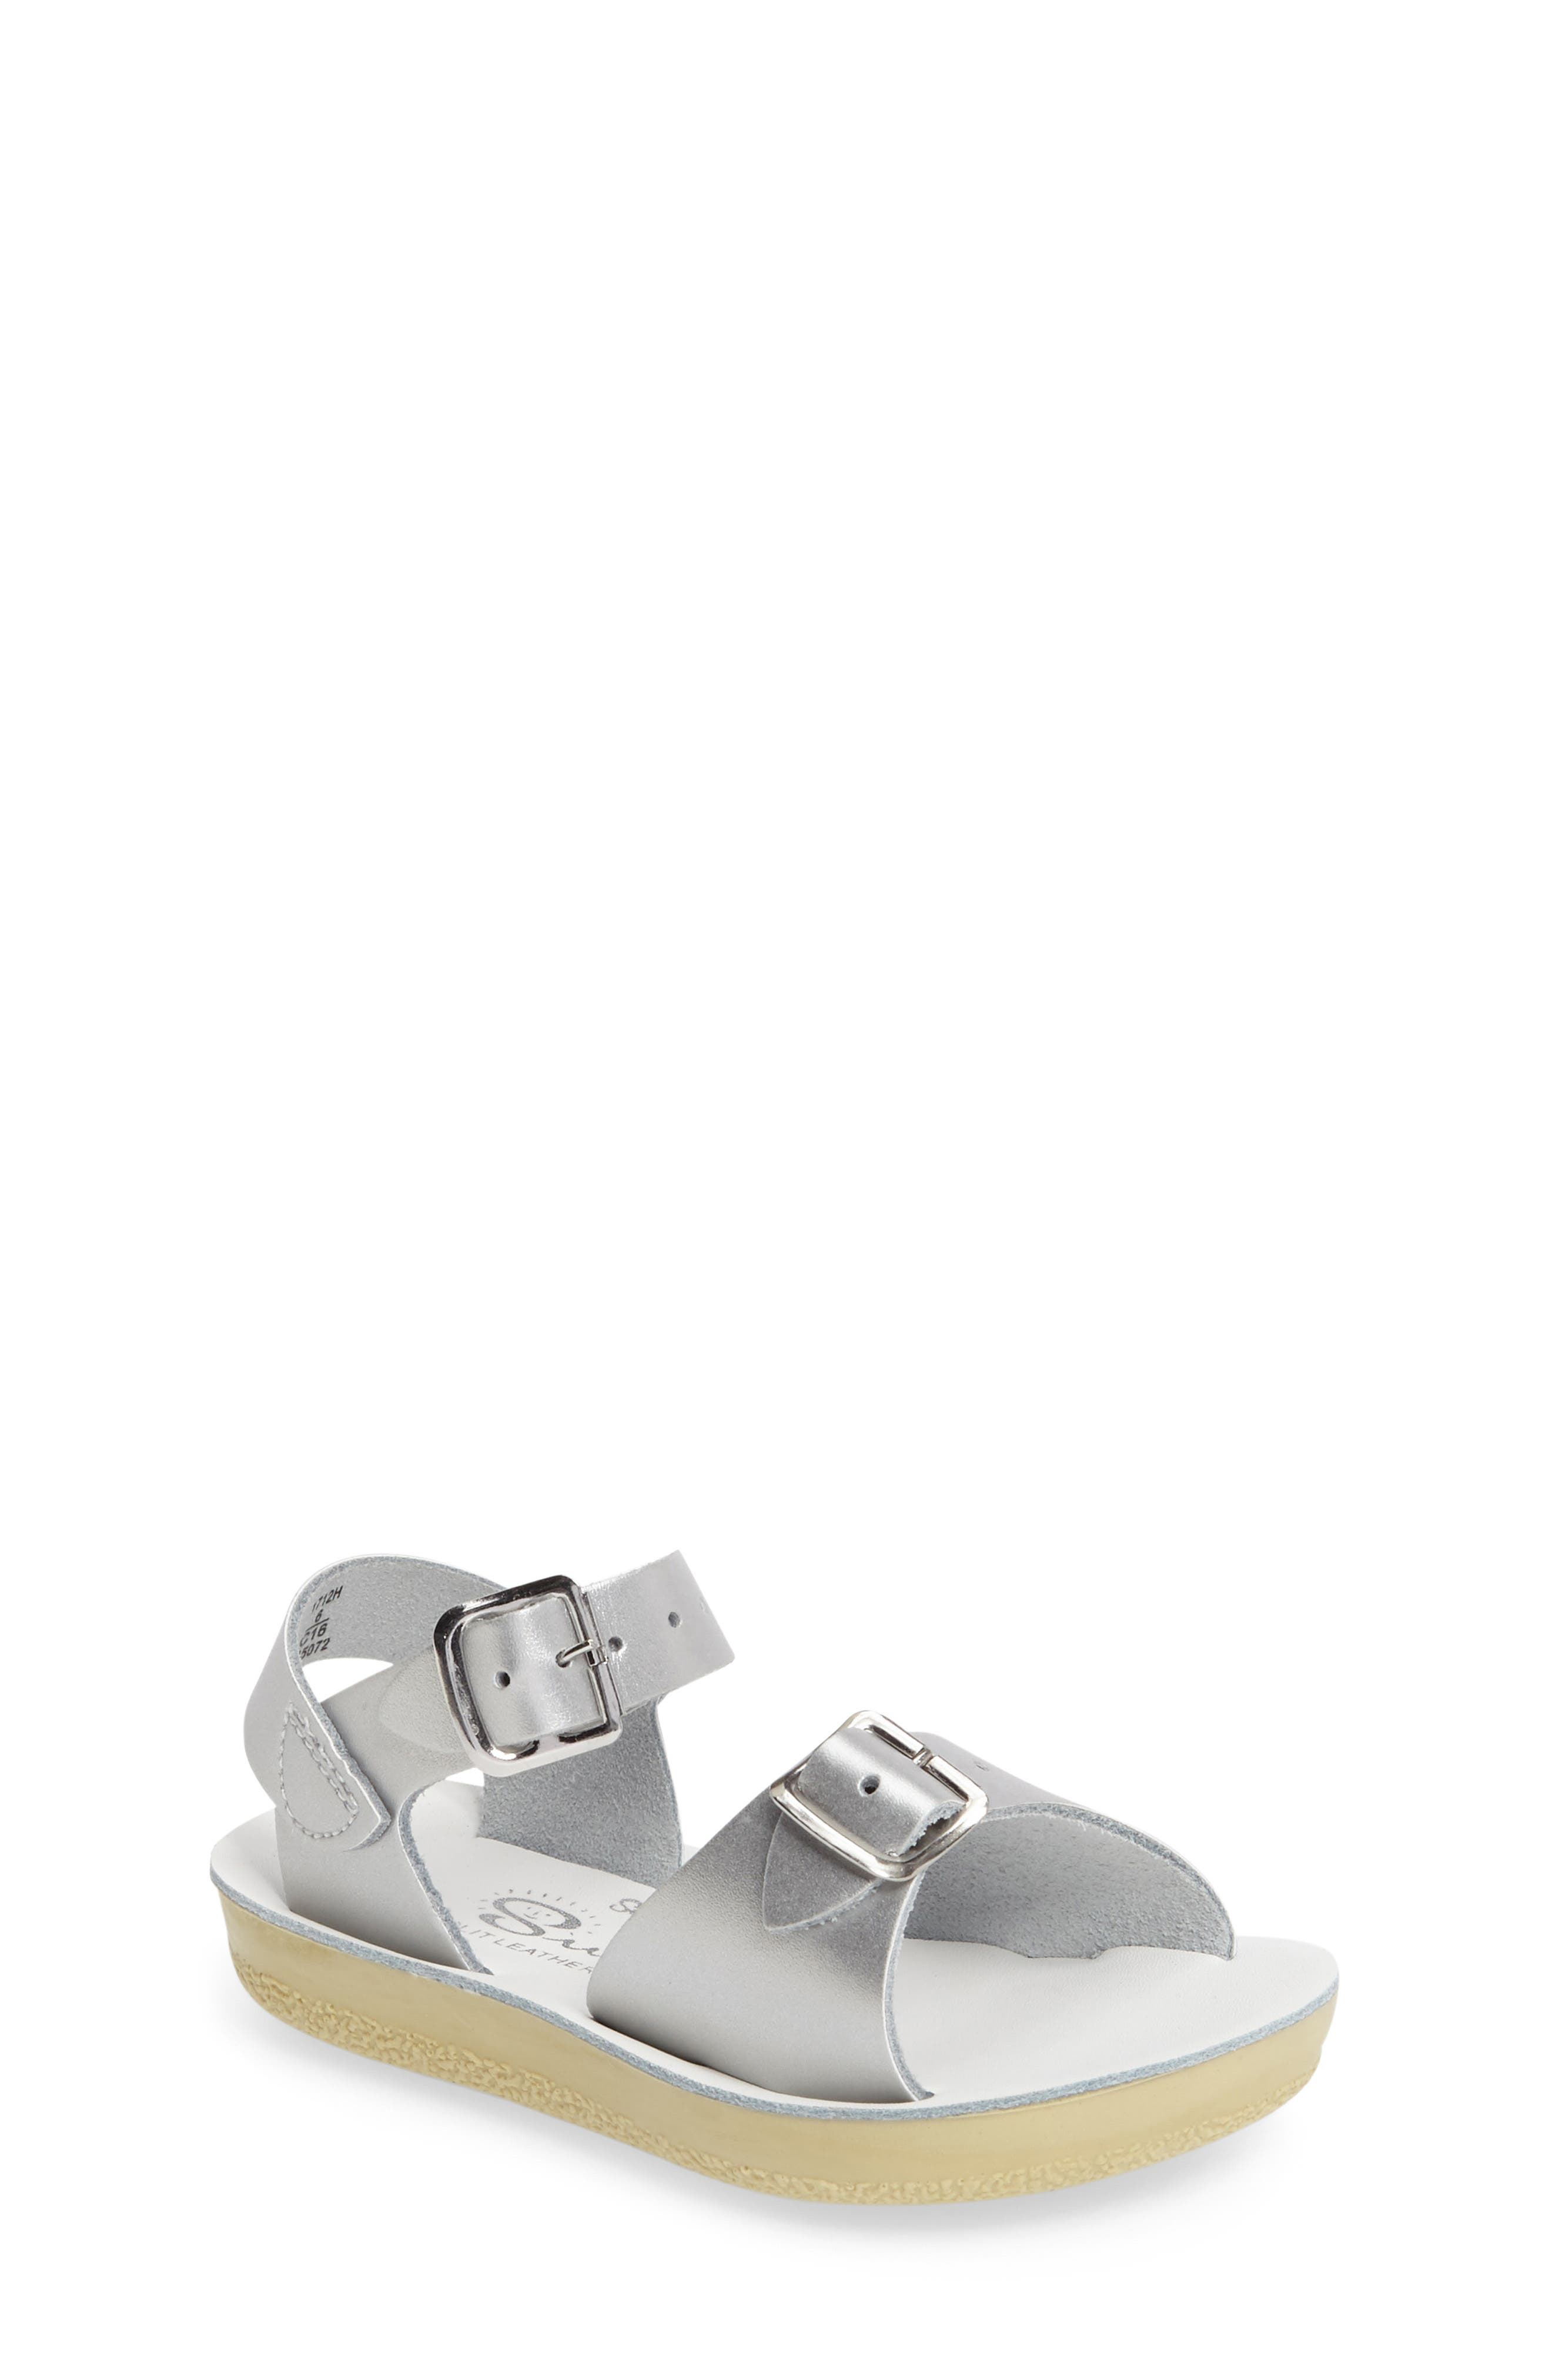 Surfer Water Friendly Sandal,                         Main,                         color, SILVER